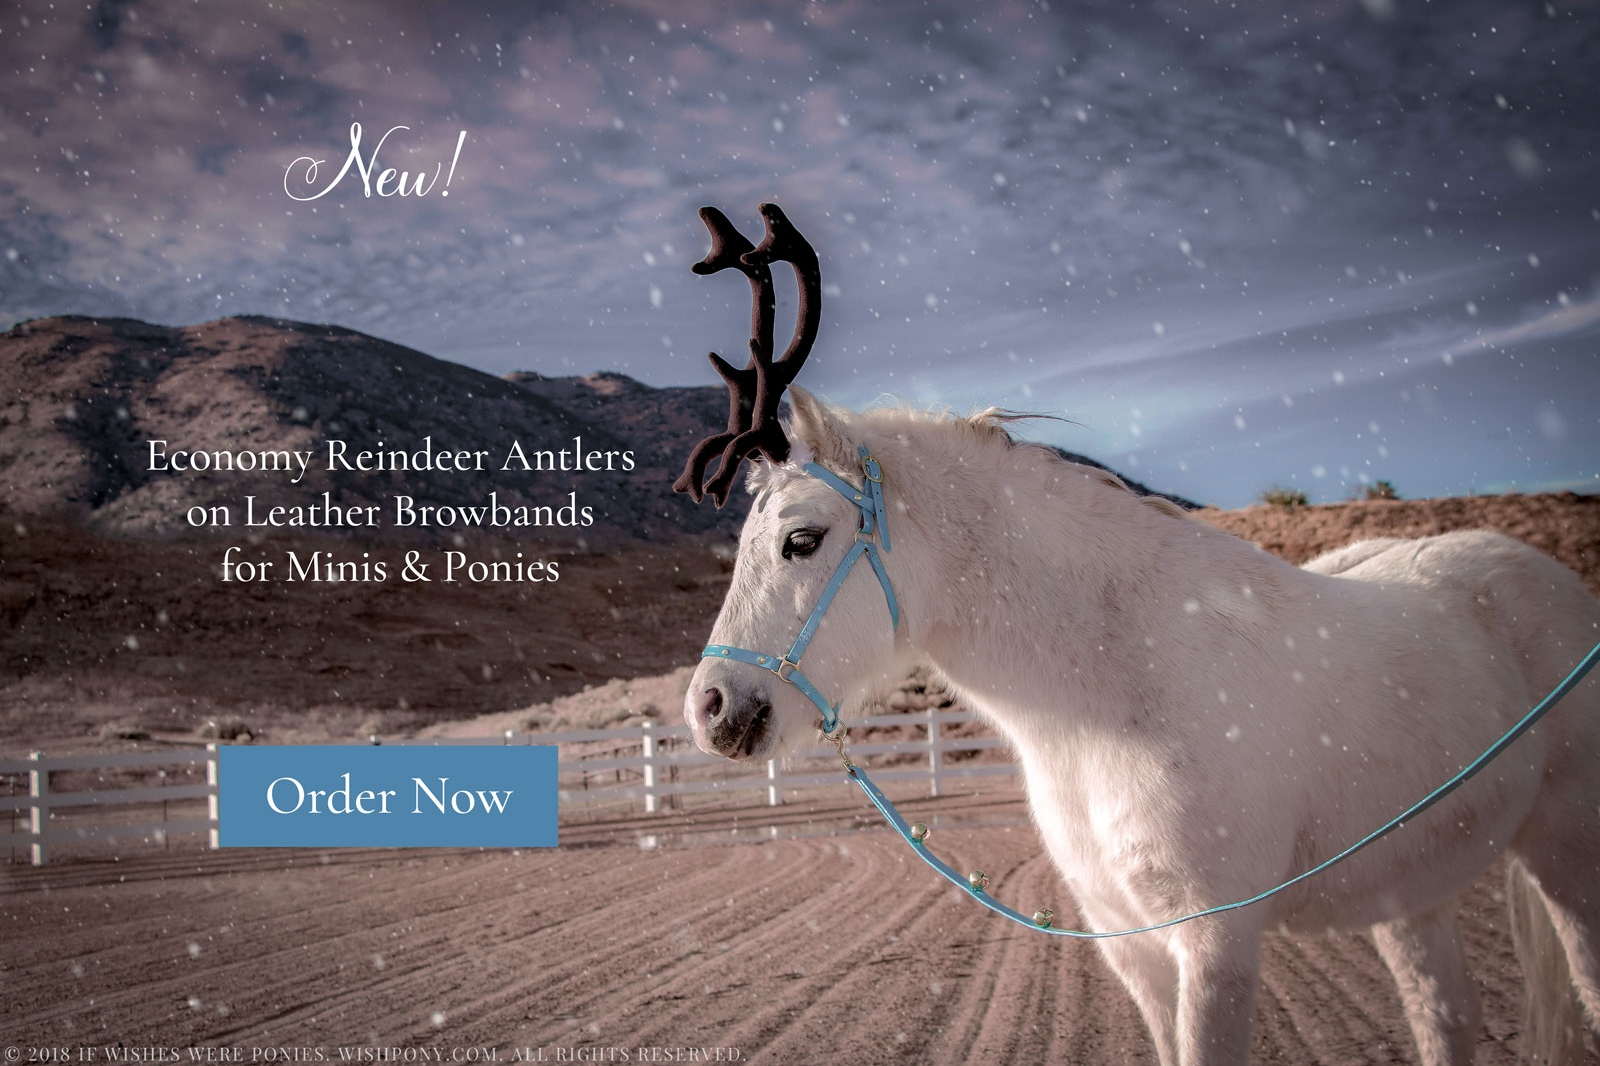 New WishPony Reindeer Antlers for Minis and Ponies